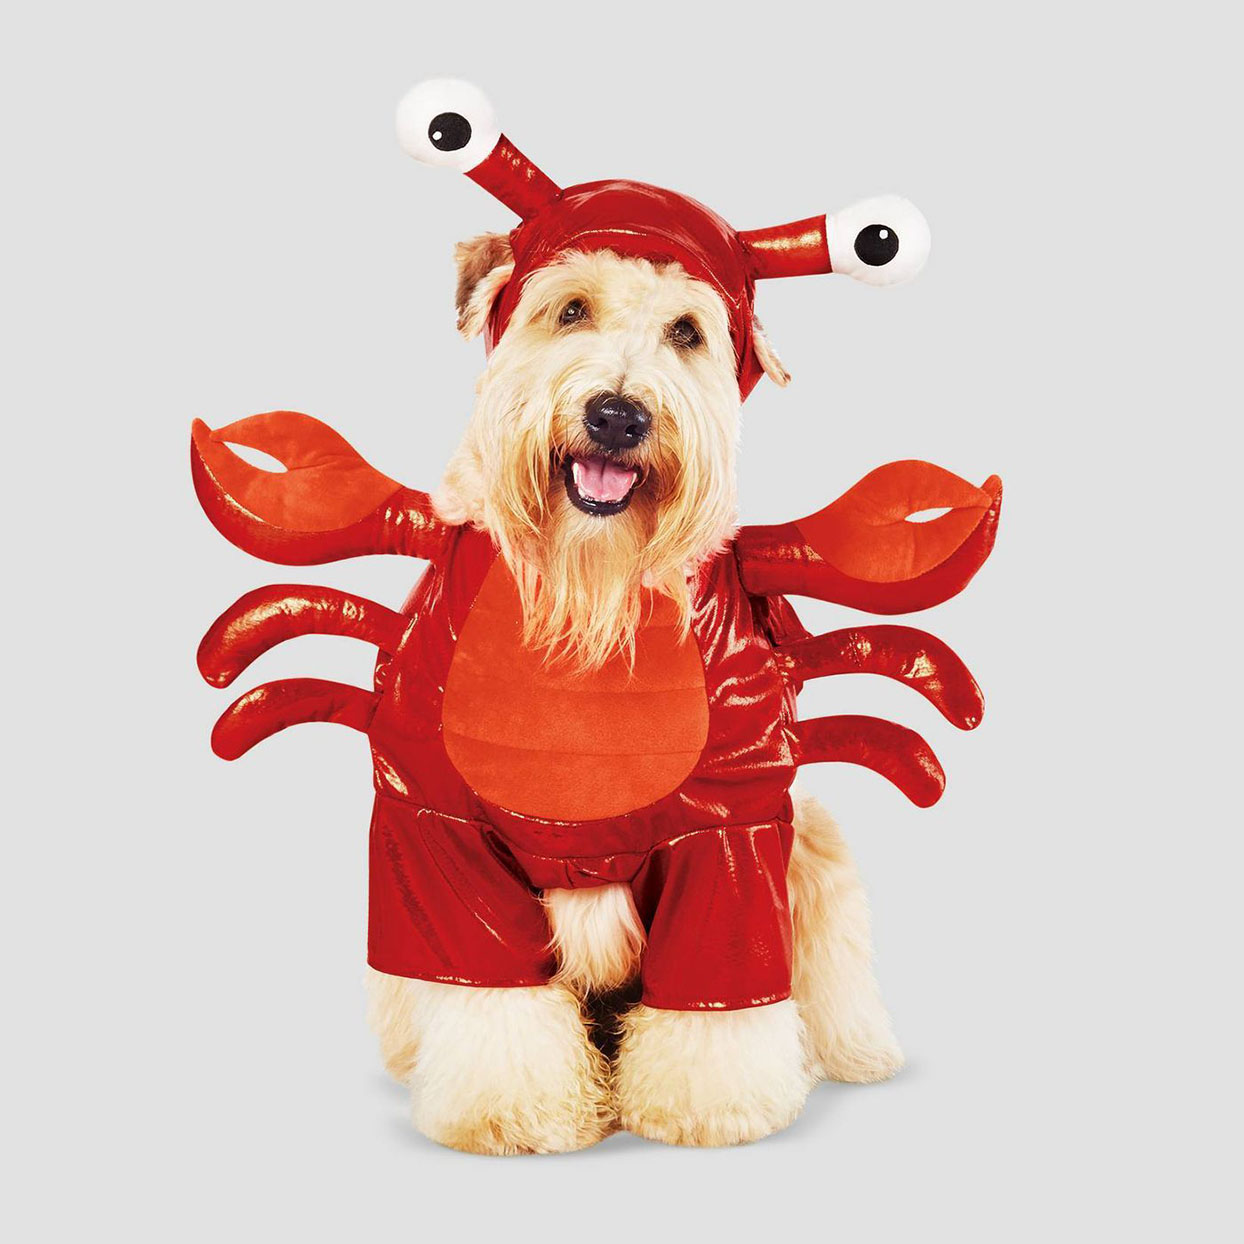 Dog in a red lobster costume